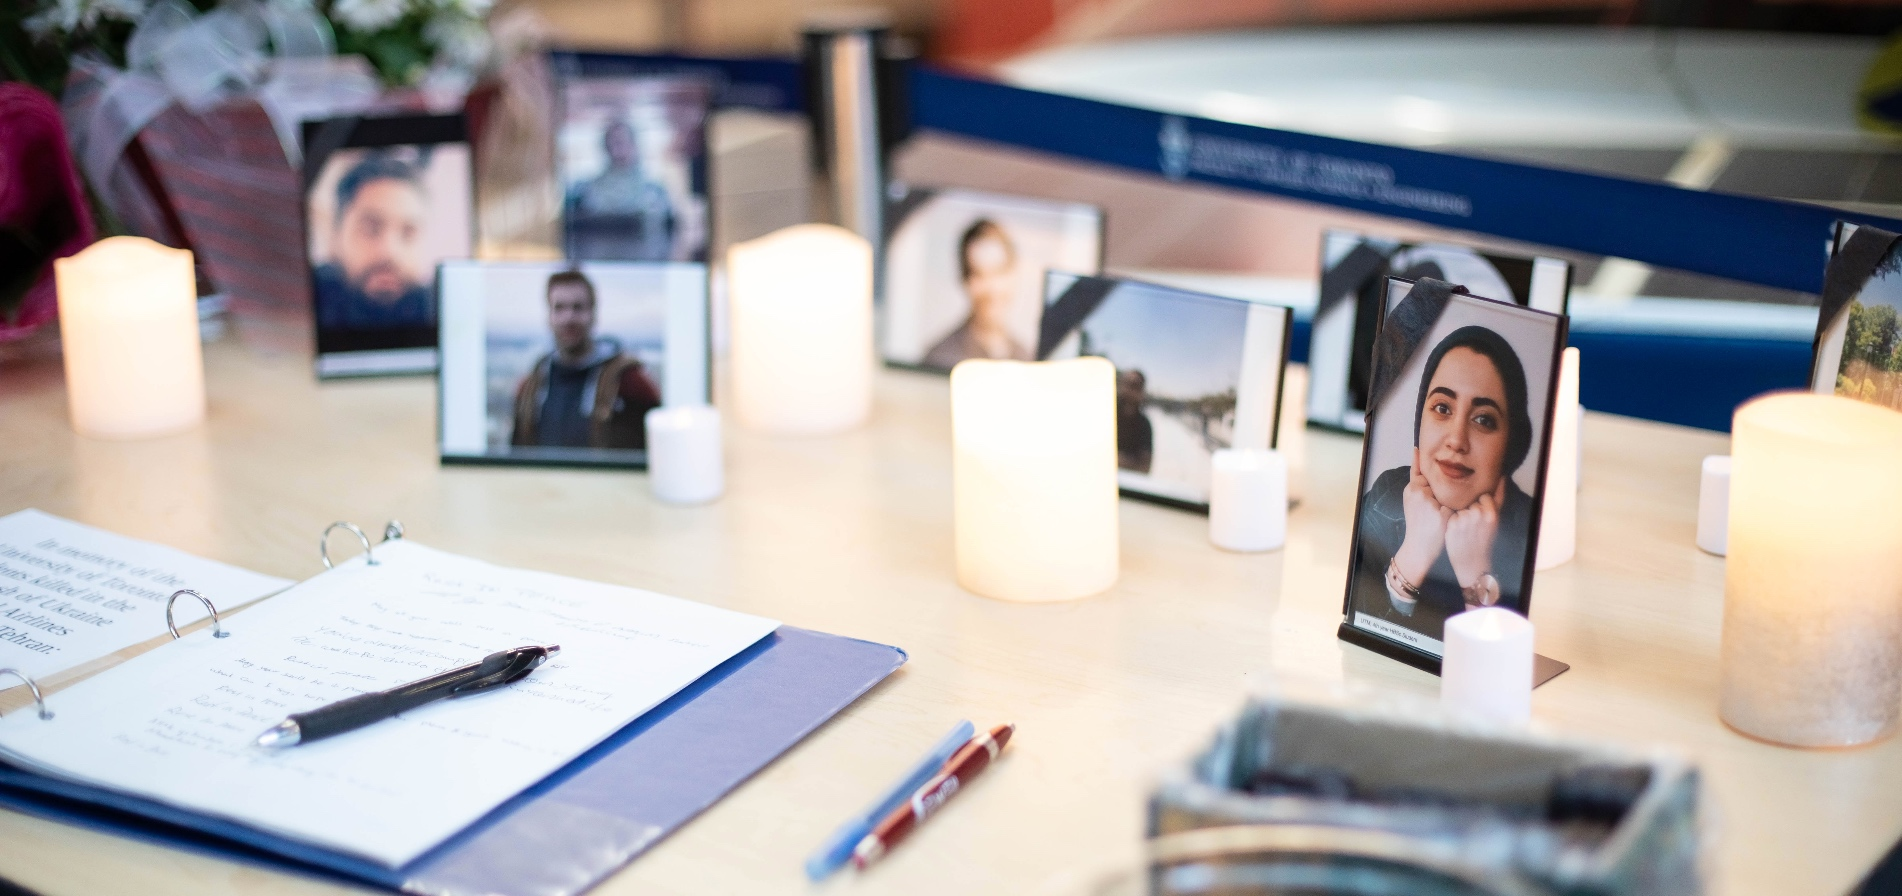 Photos commemorate the University of Toronto students killed in the Flight PS752 crash.